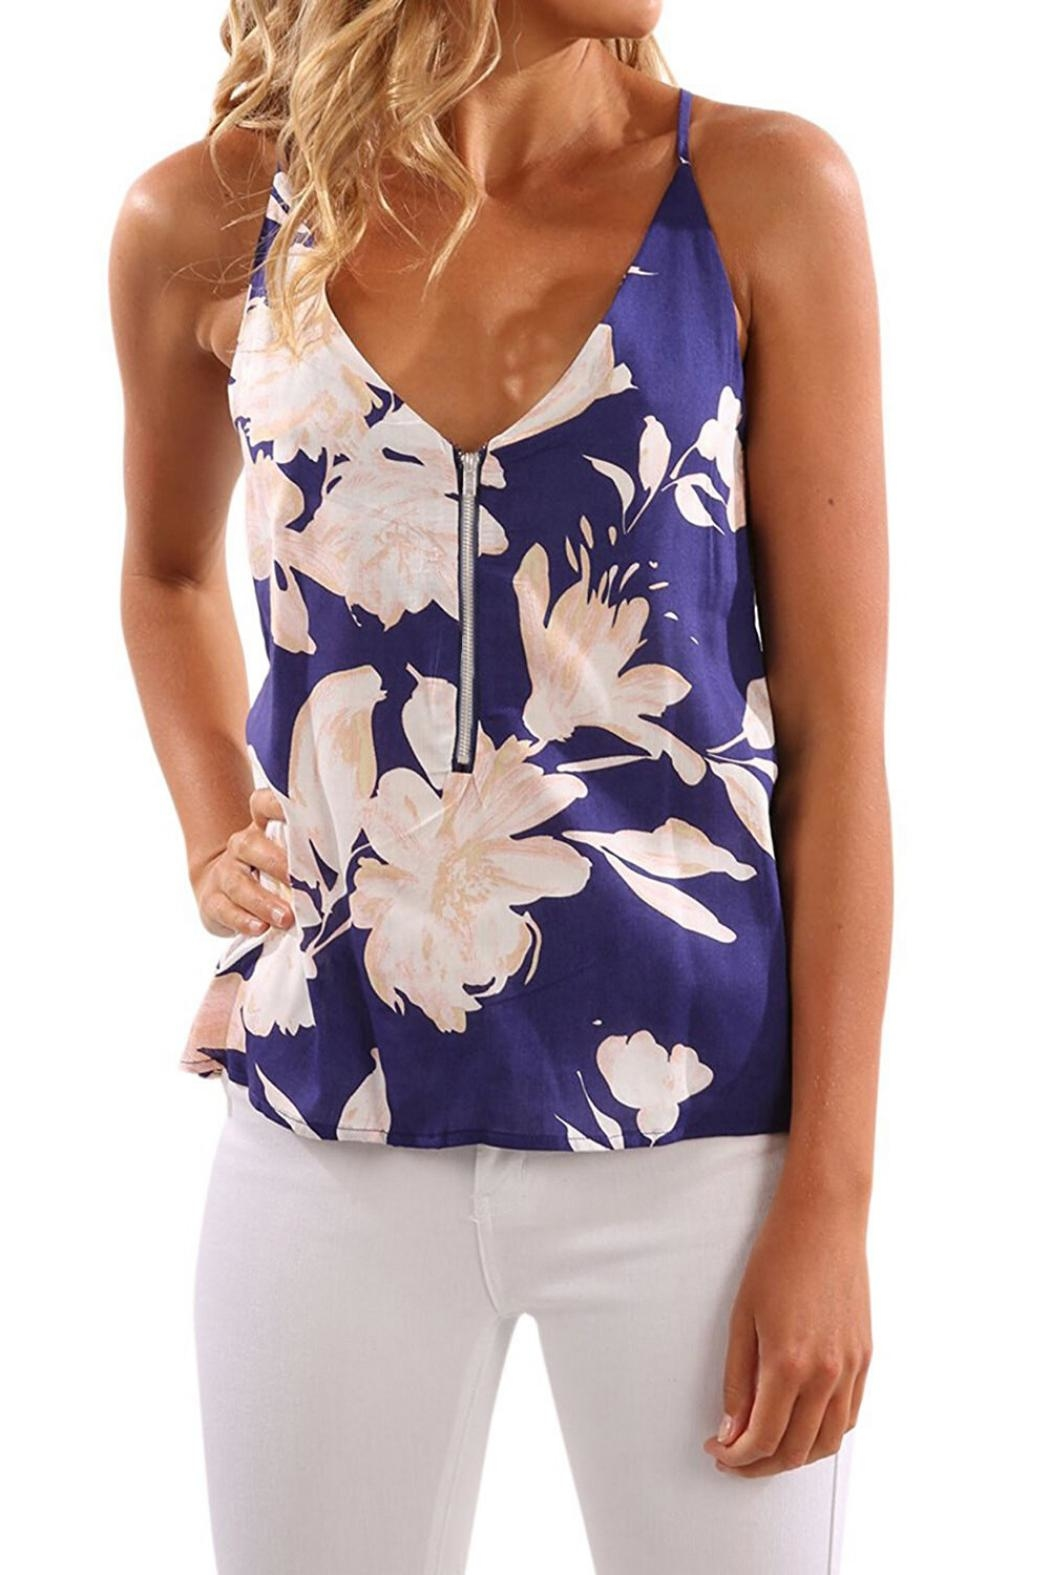 Unbranded Navy Floral Top - Main Image